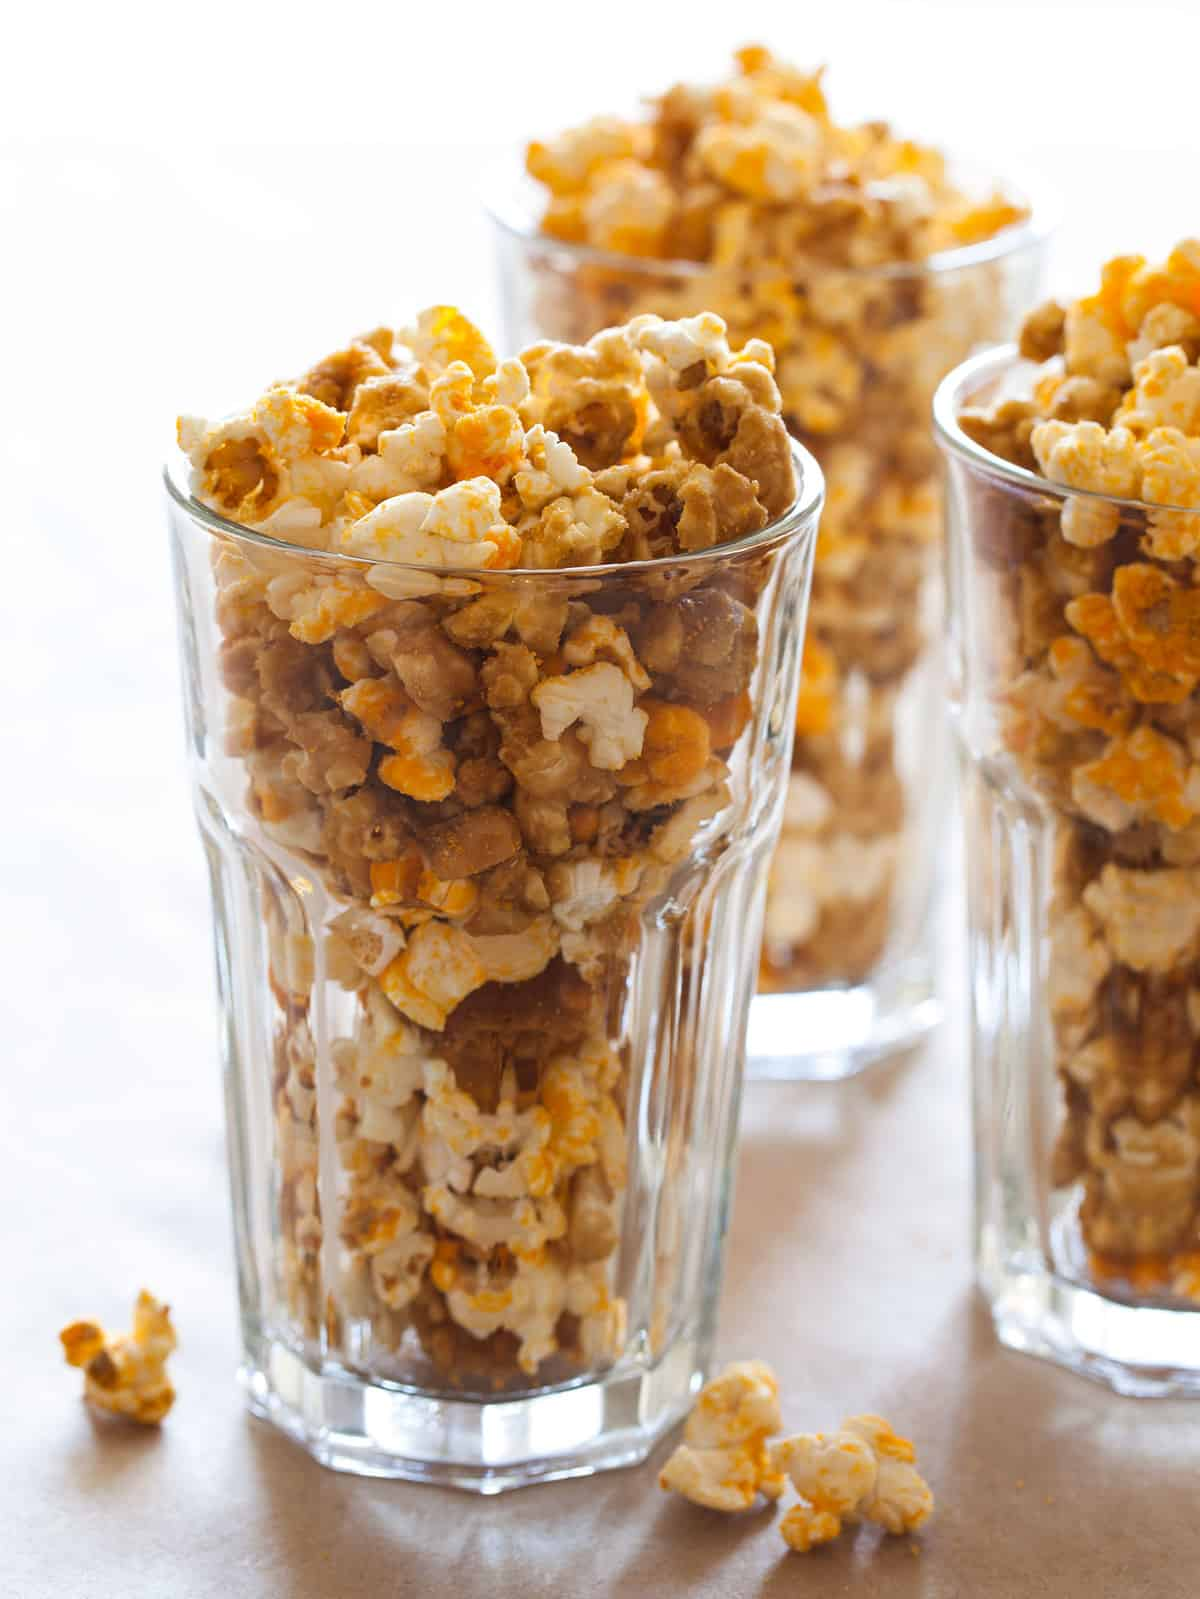 Cheddar and Caramel Popcorn Mix recipe   Spoon Fork Bacon